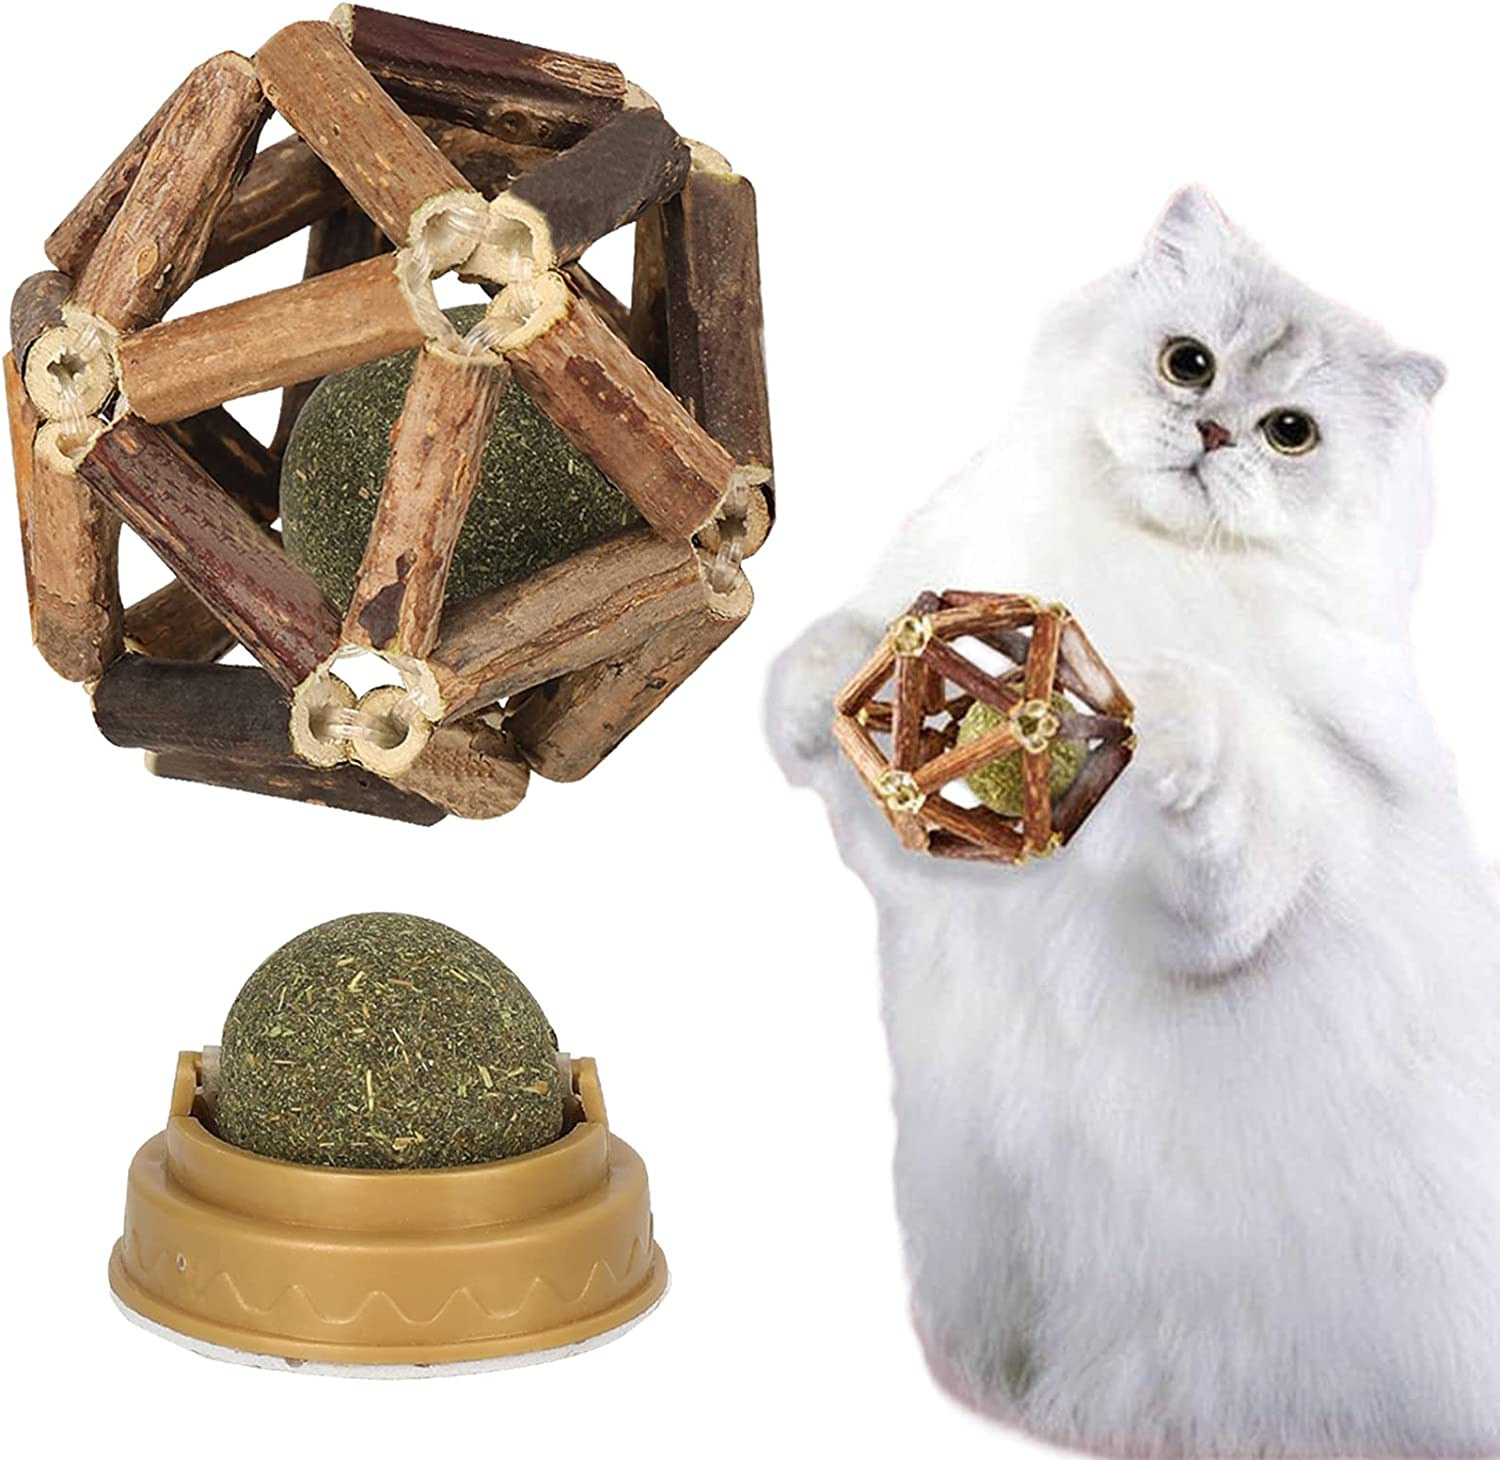 Petoss Catnip New products, world's highest quality popular! Toys-2Pcs Natural Stick Silvervine Deluxe BallNat